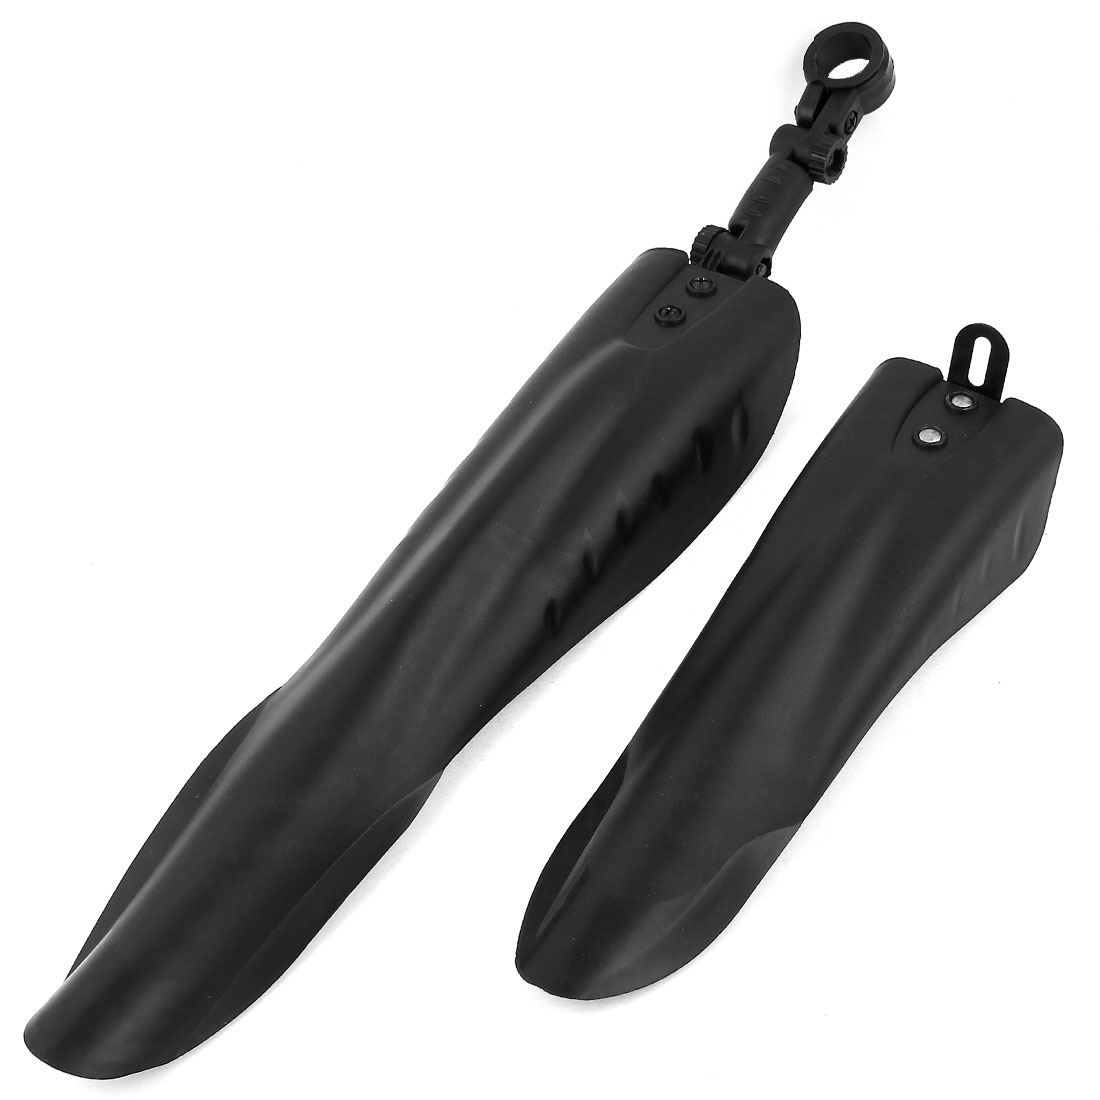 2pcs Black Plastic Mountain Bike Bicycle Rear Front Mud Guard Mudguard Fenders